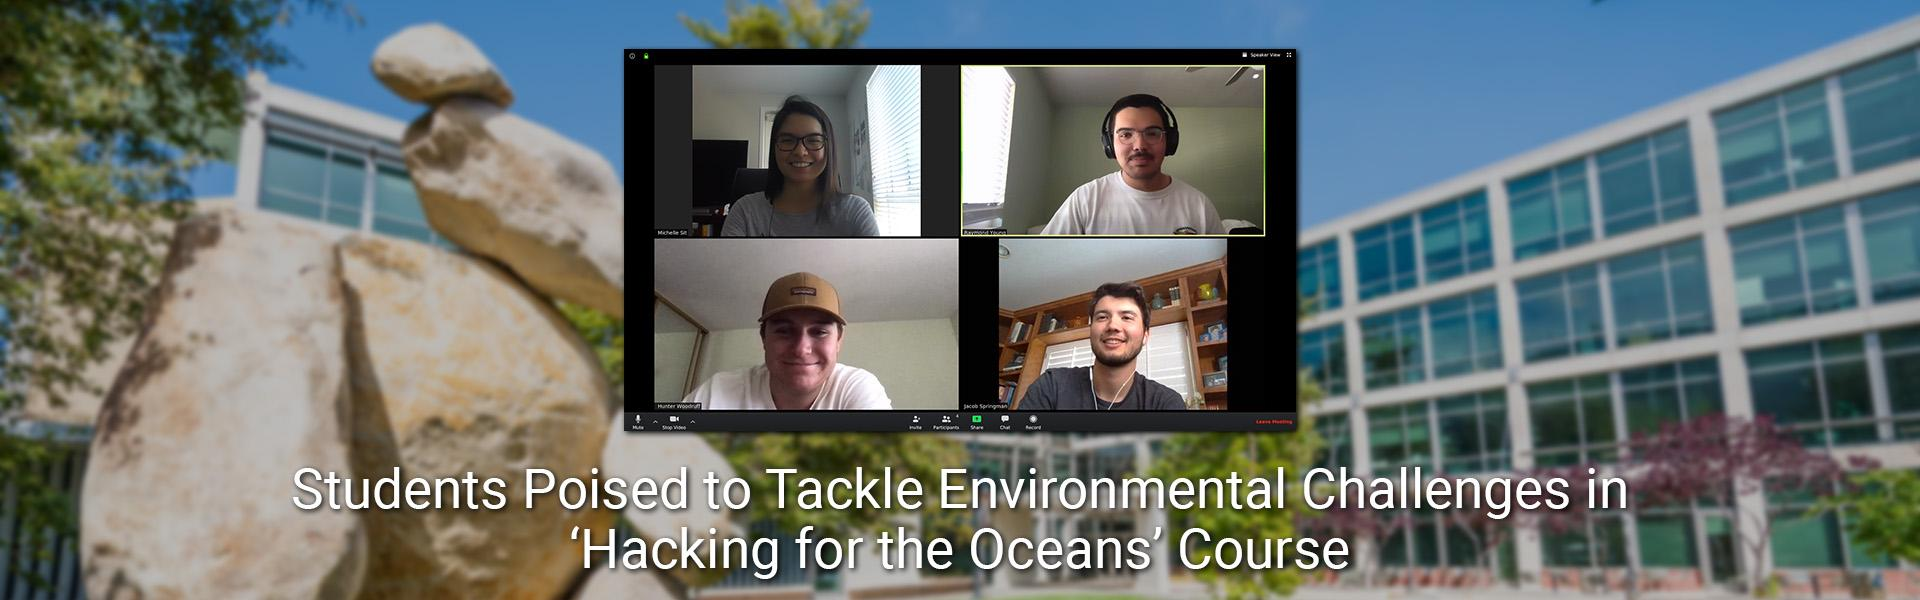 Students Poised to Tackle Environmental Challenges in 'Hacking for the Oceans' Course